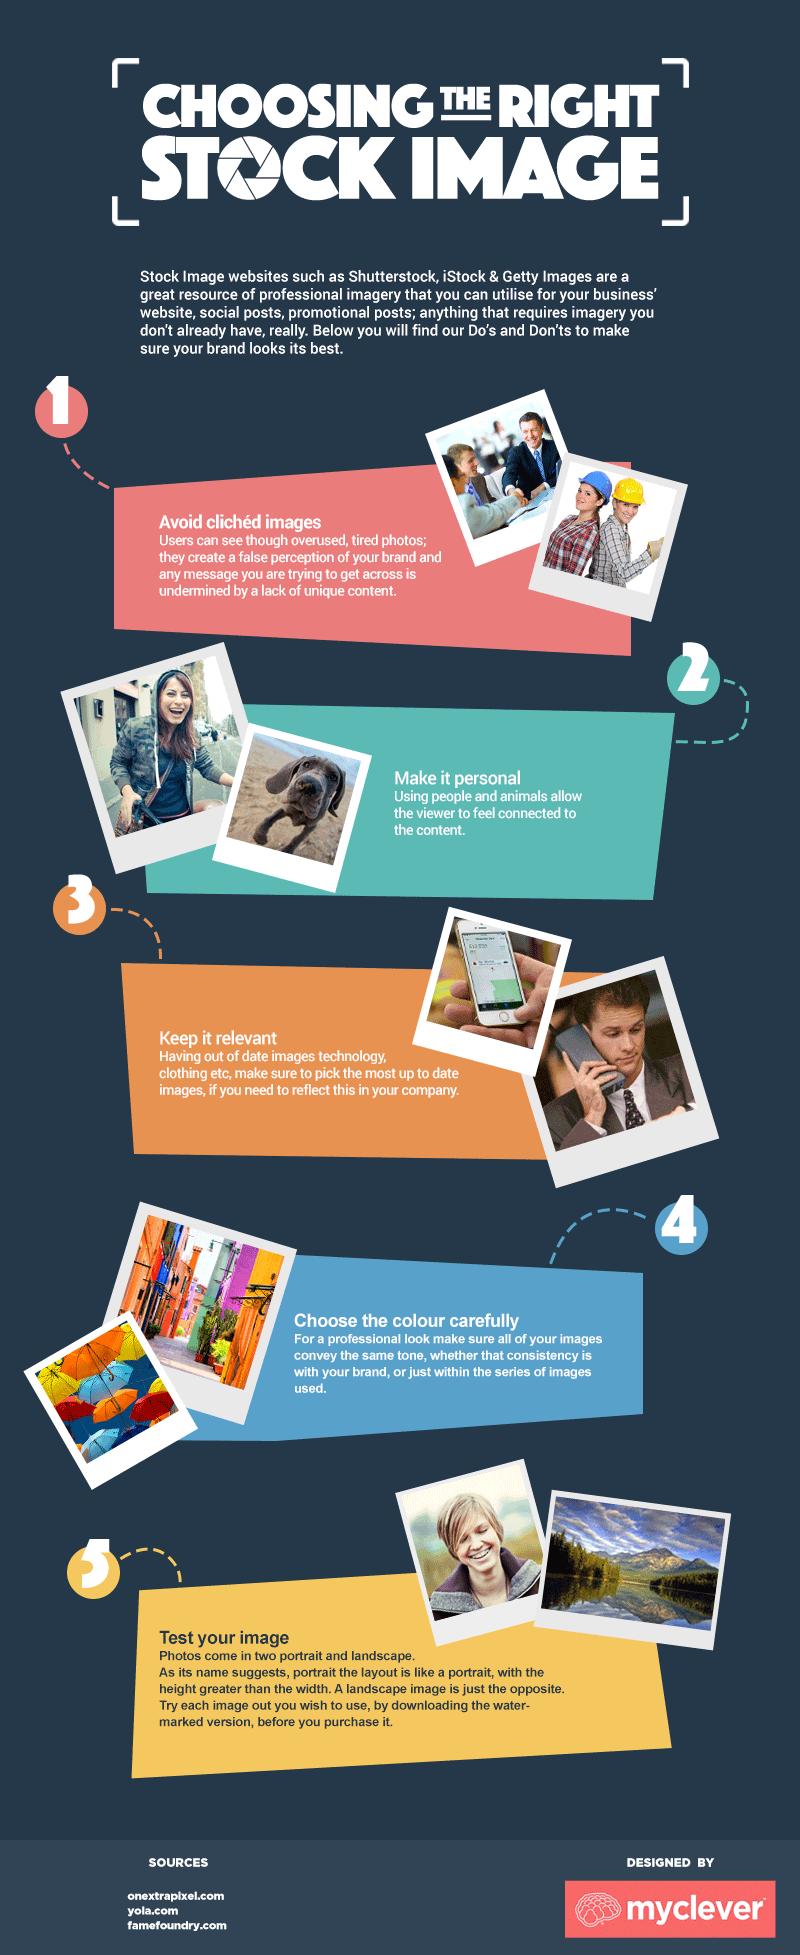 Lima Critical Tips To Choose The Right Stock Image Infographic